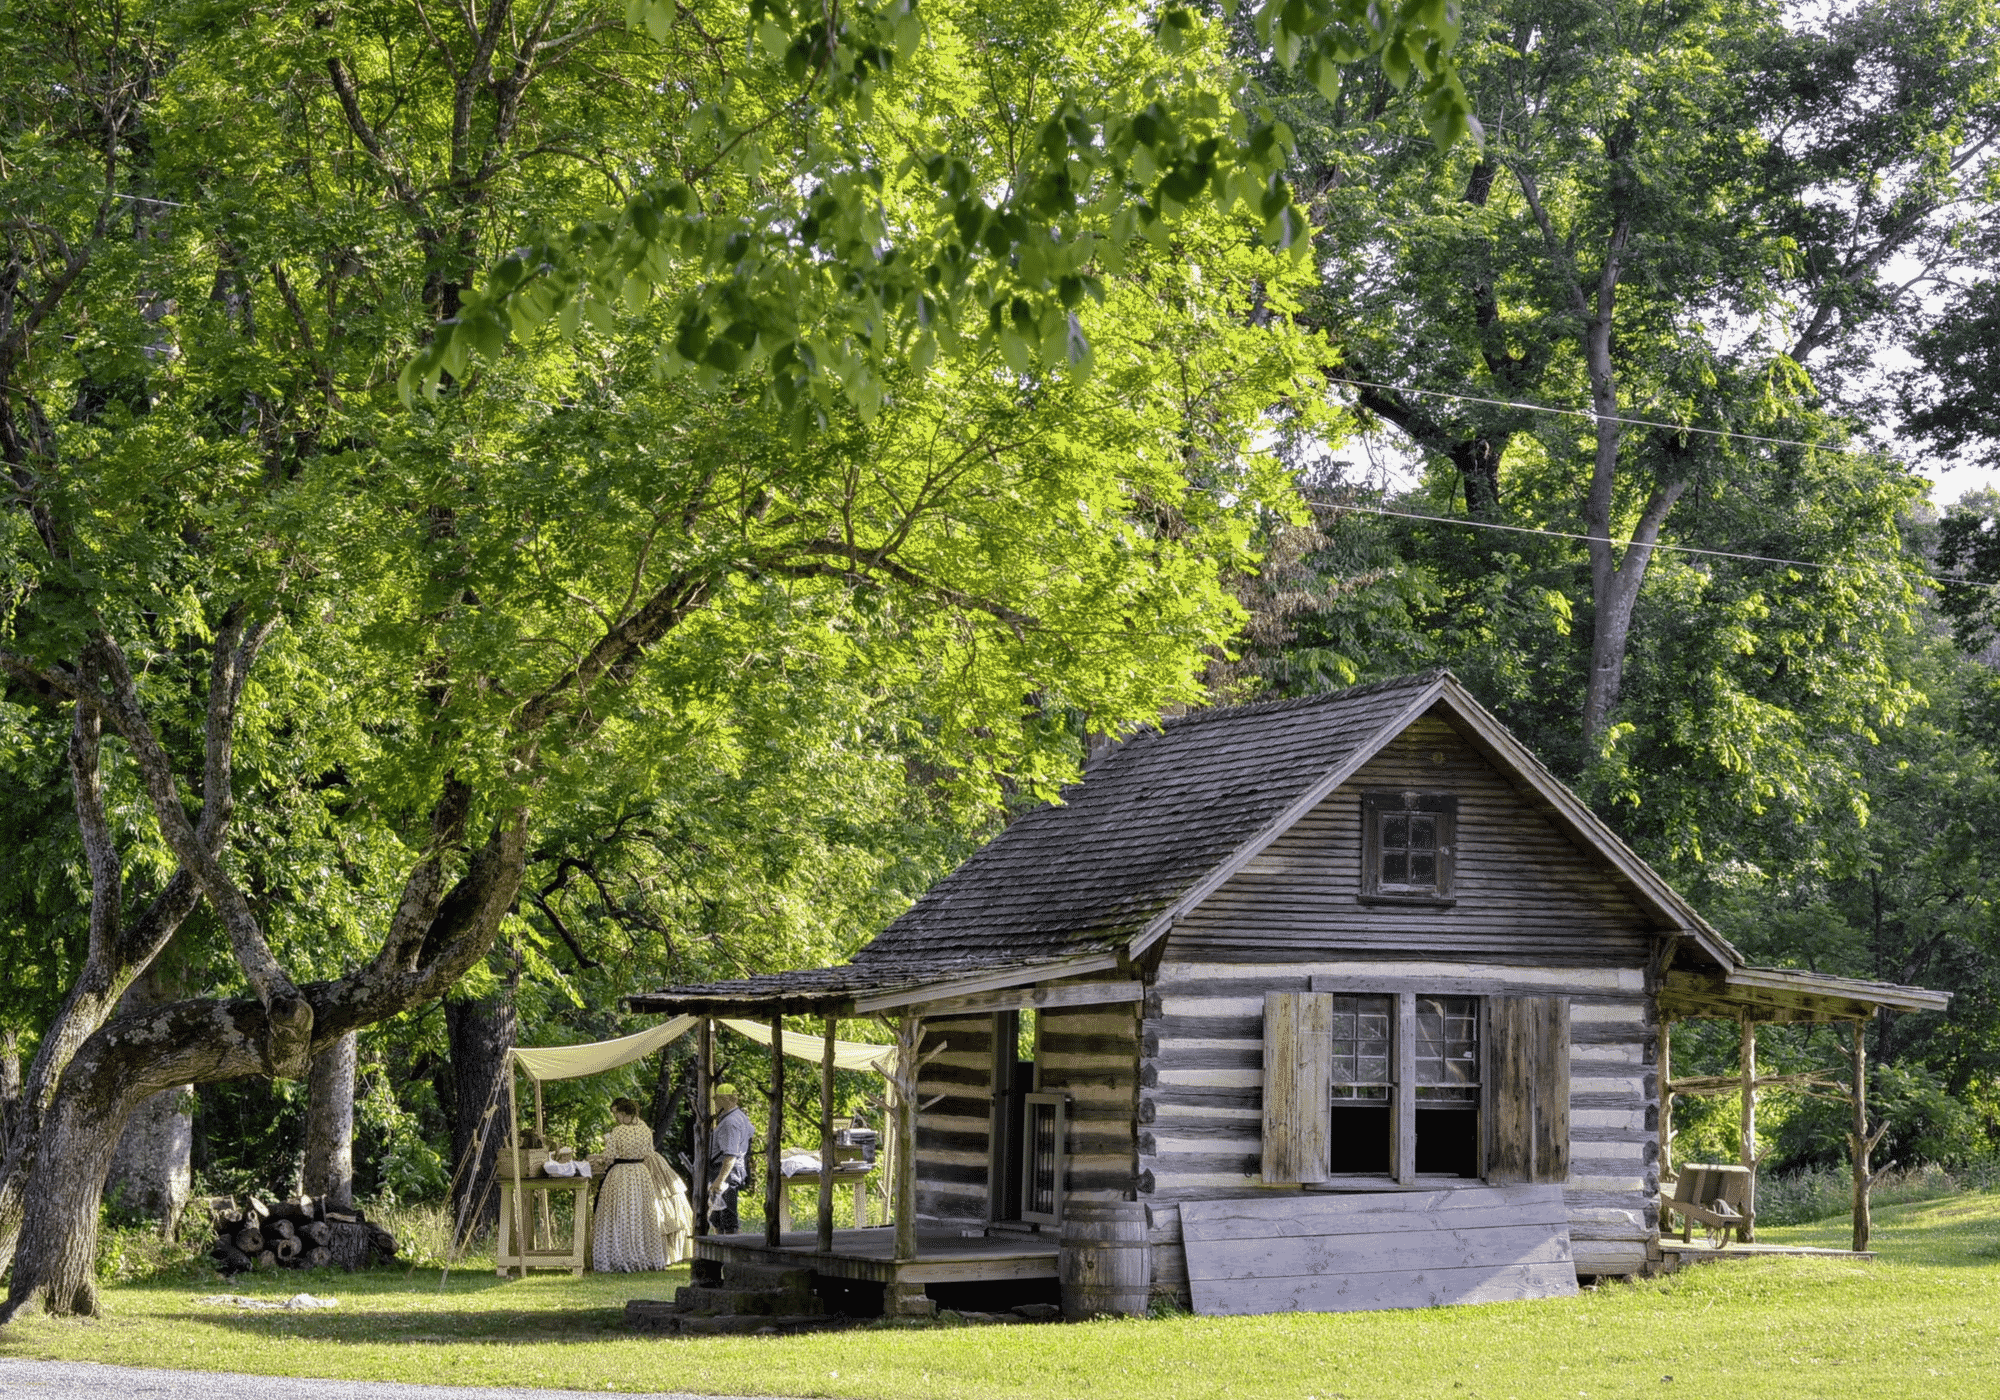 A historic log cabin shown next to a large, leafy tree.